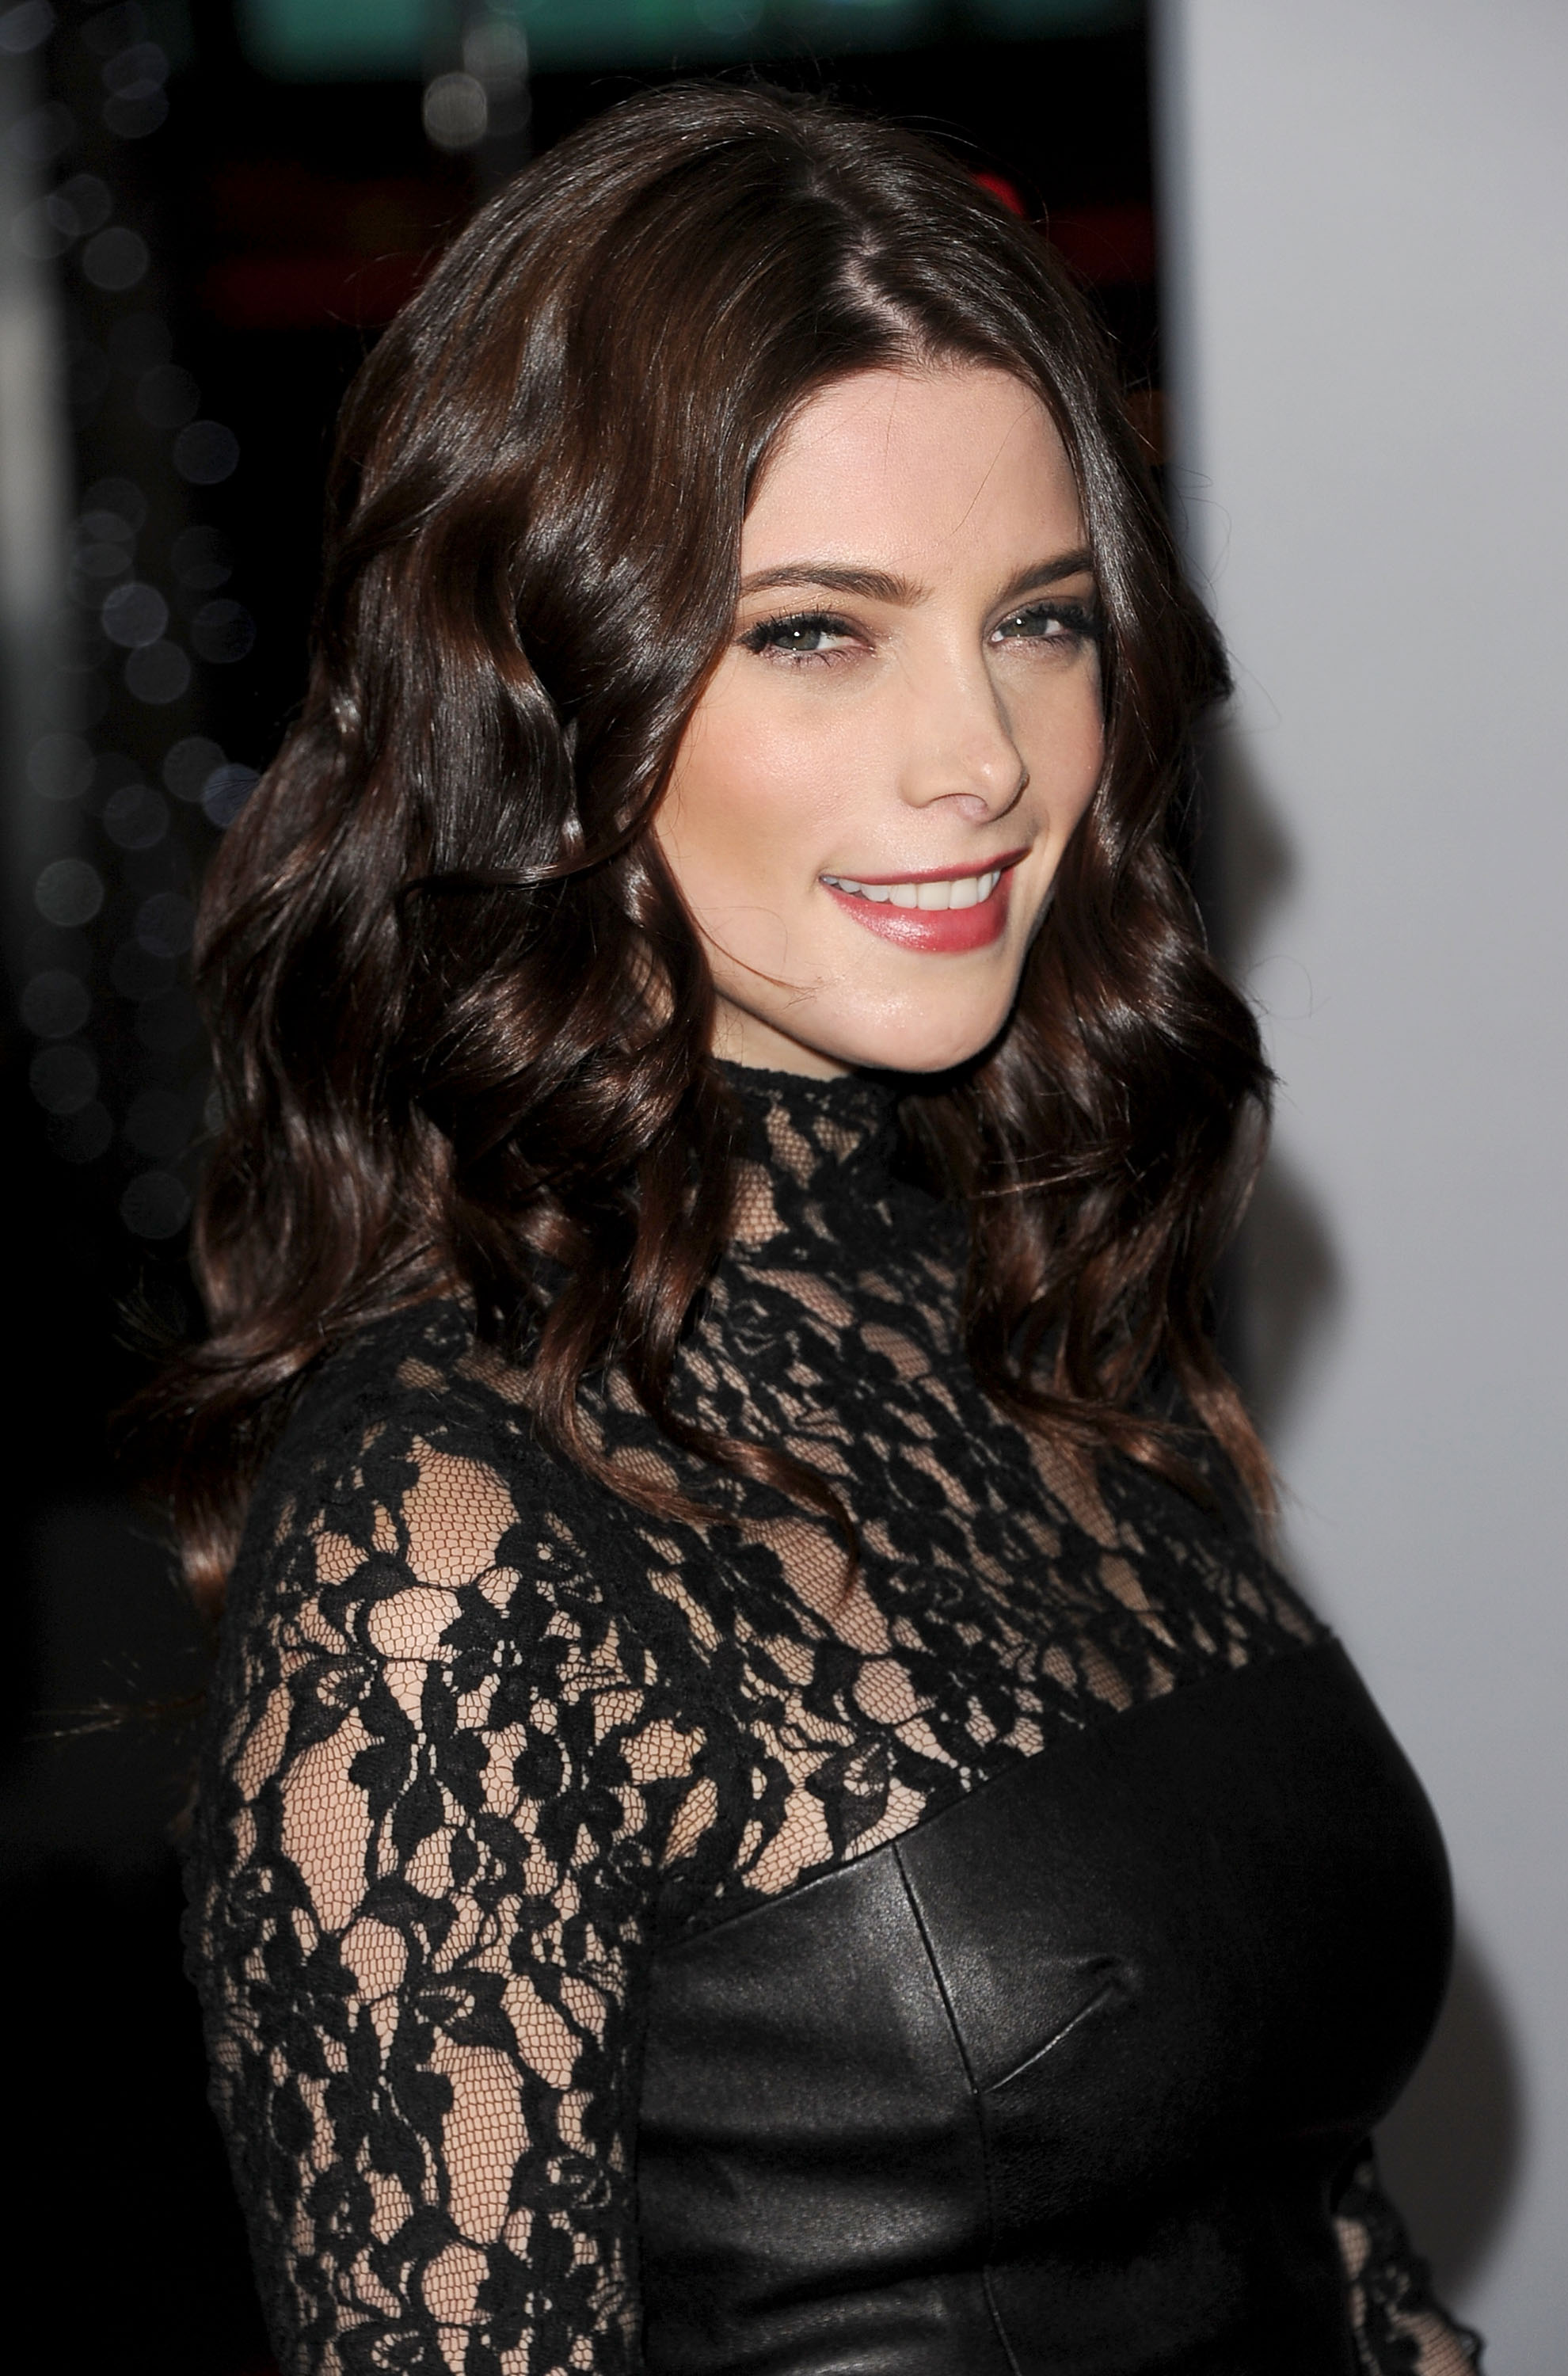 Ashley Greene wore a turtleneck dress in LA.